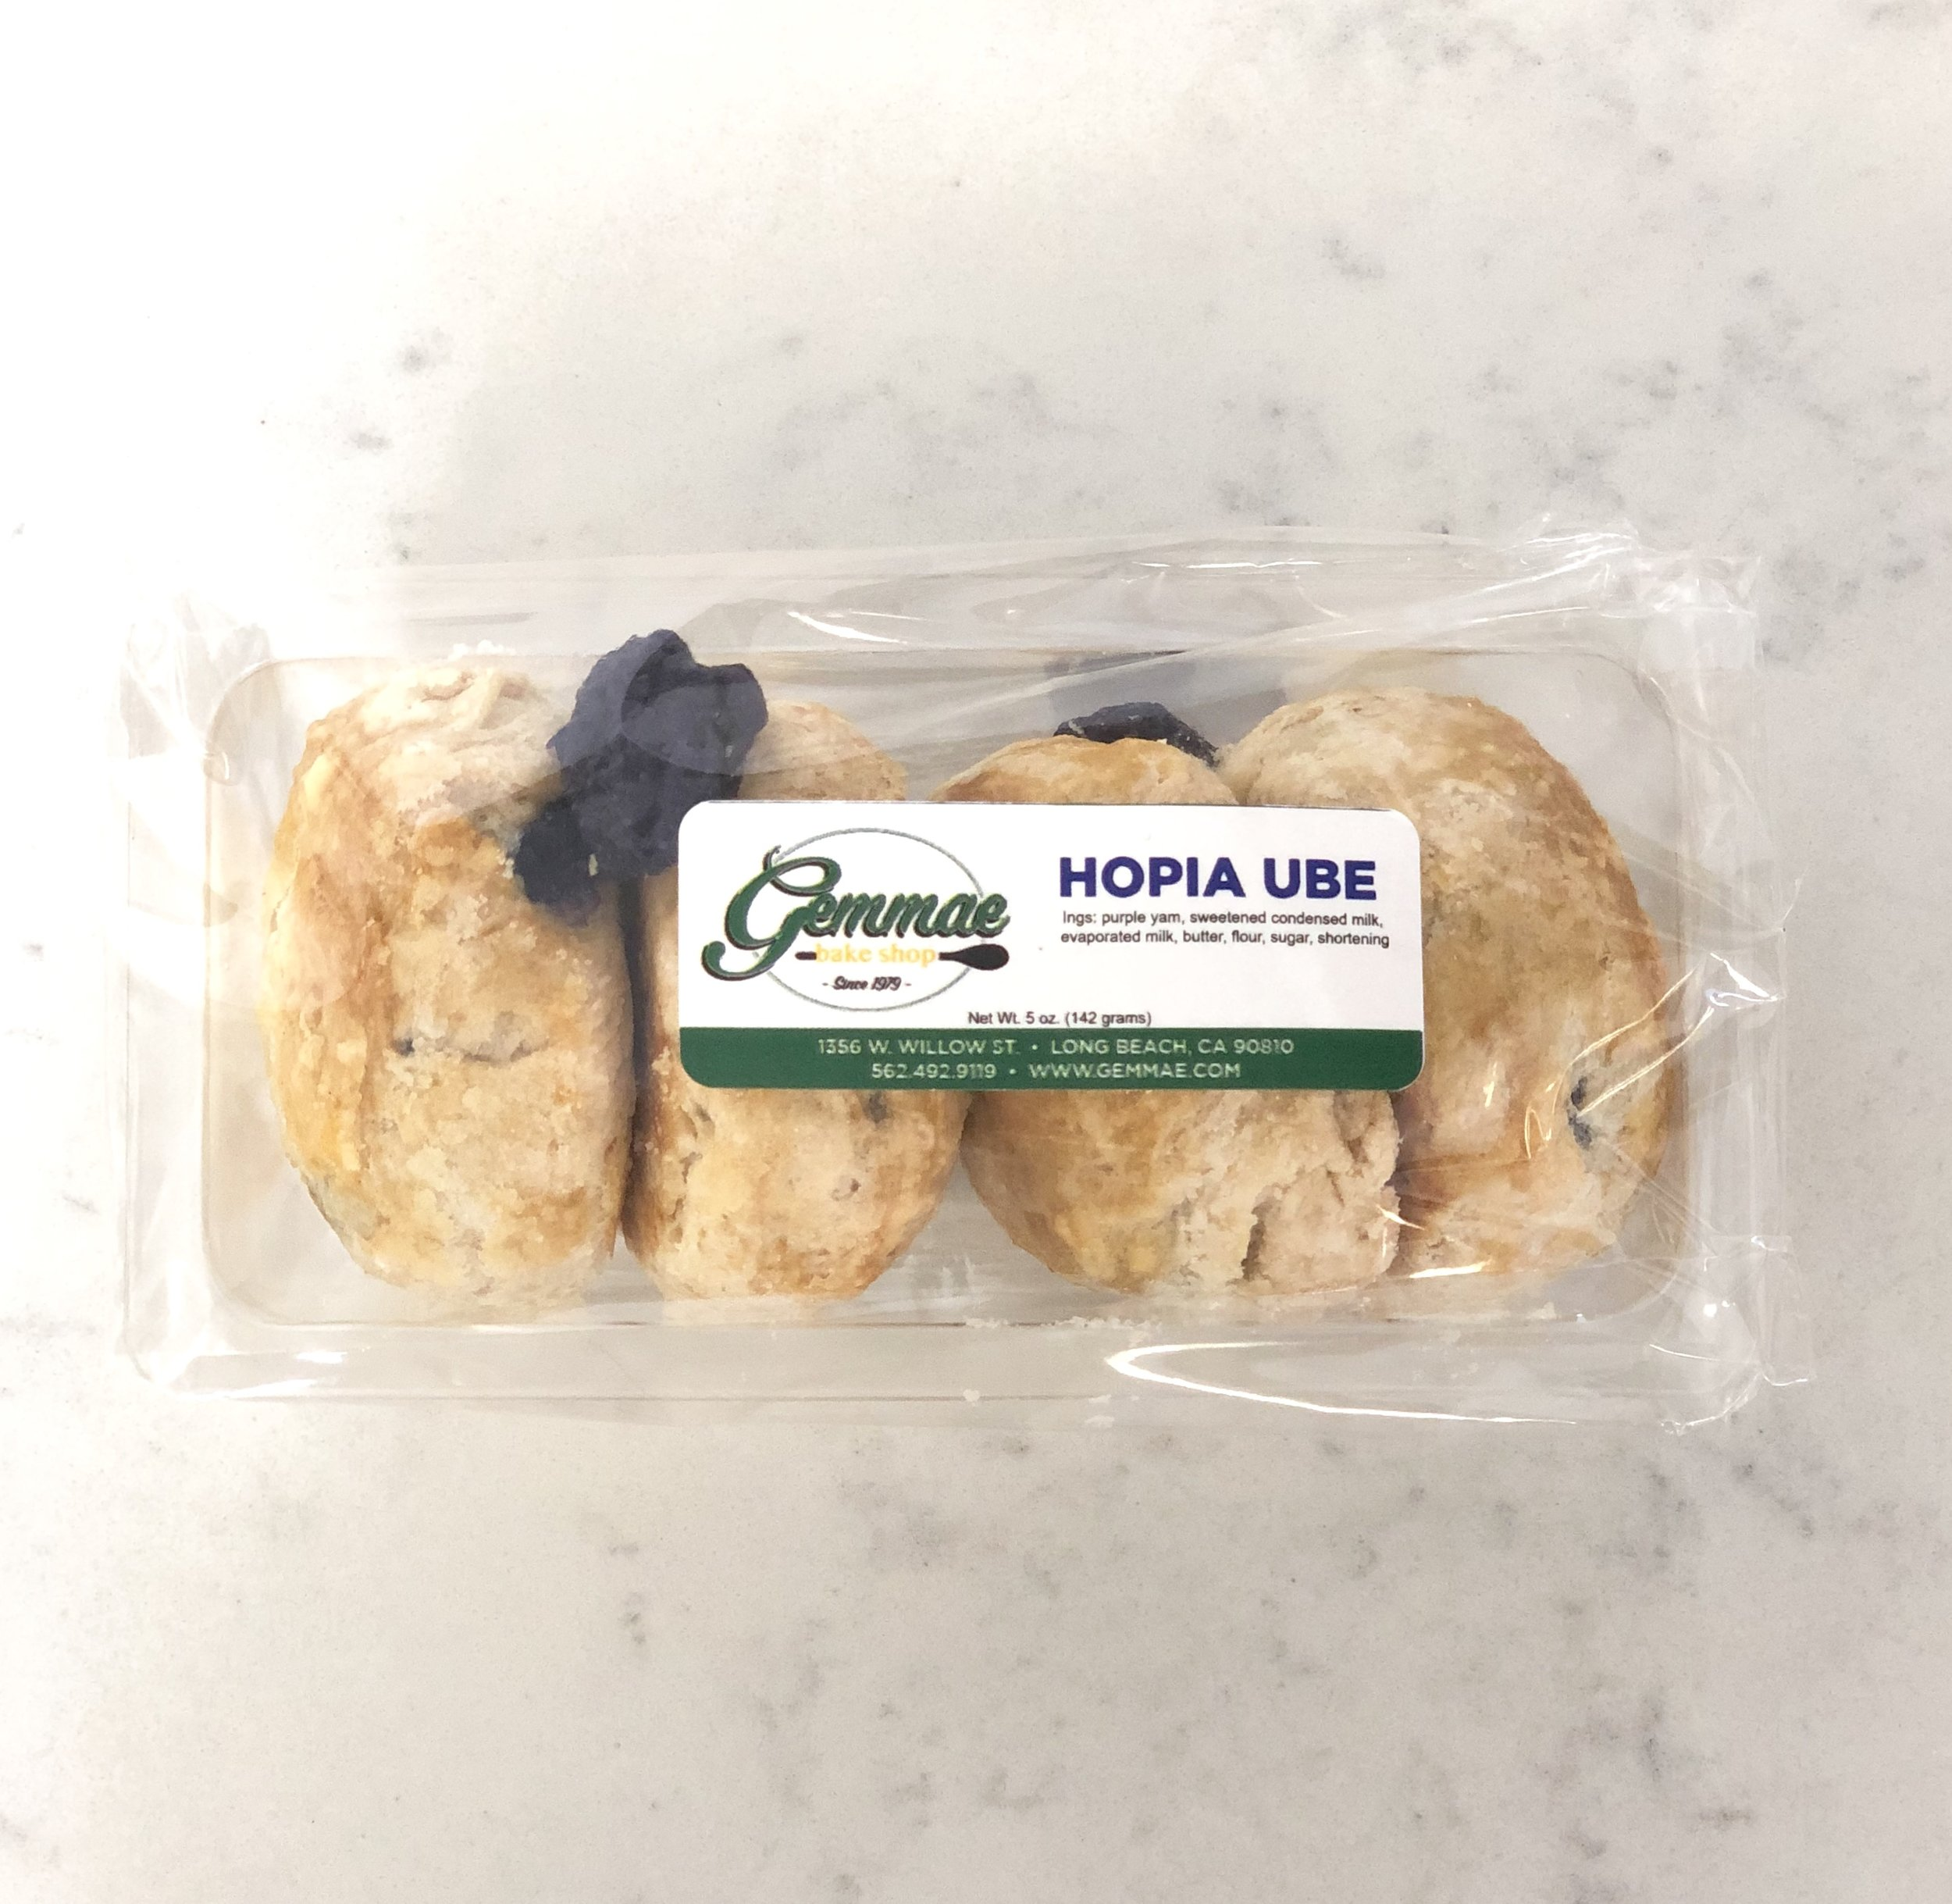 HOPIA UBE   Flaky puff pastry filled with rich Ube (sweetened purple yam). Each pack contains 4 hopia buns.